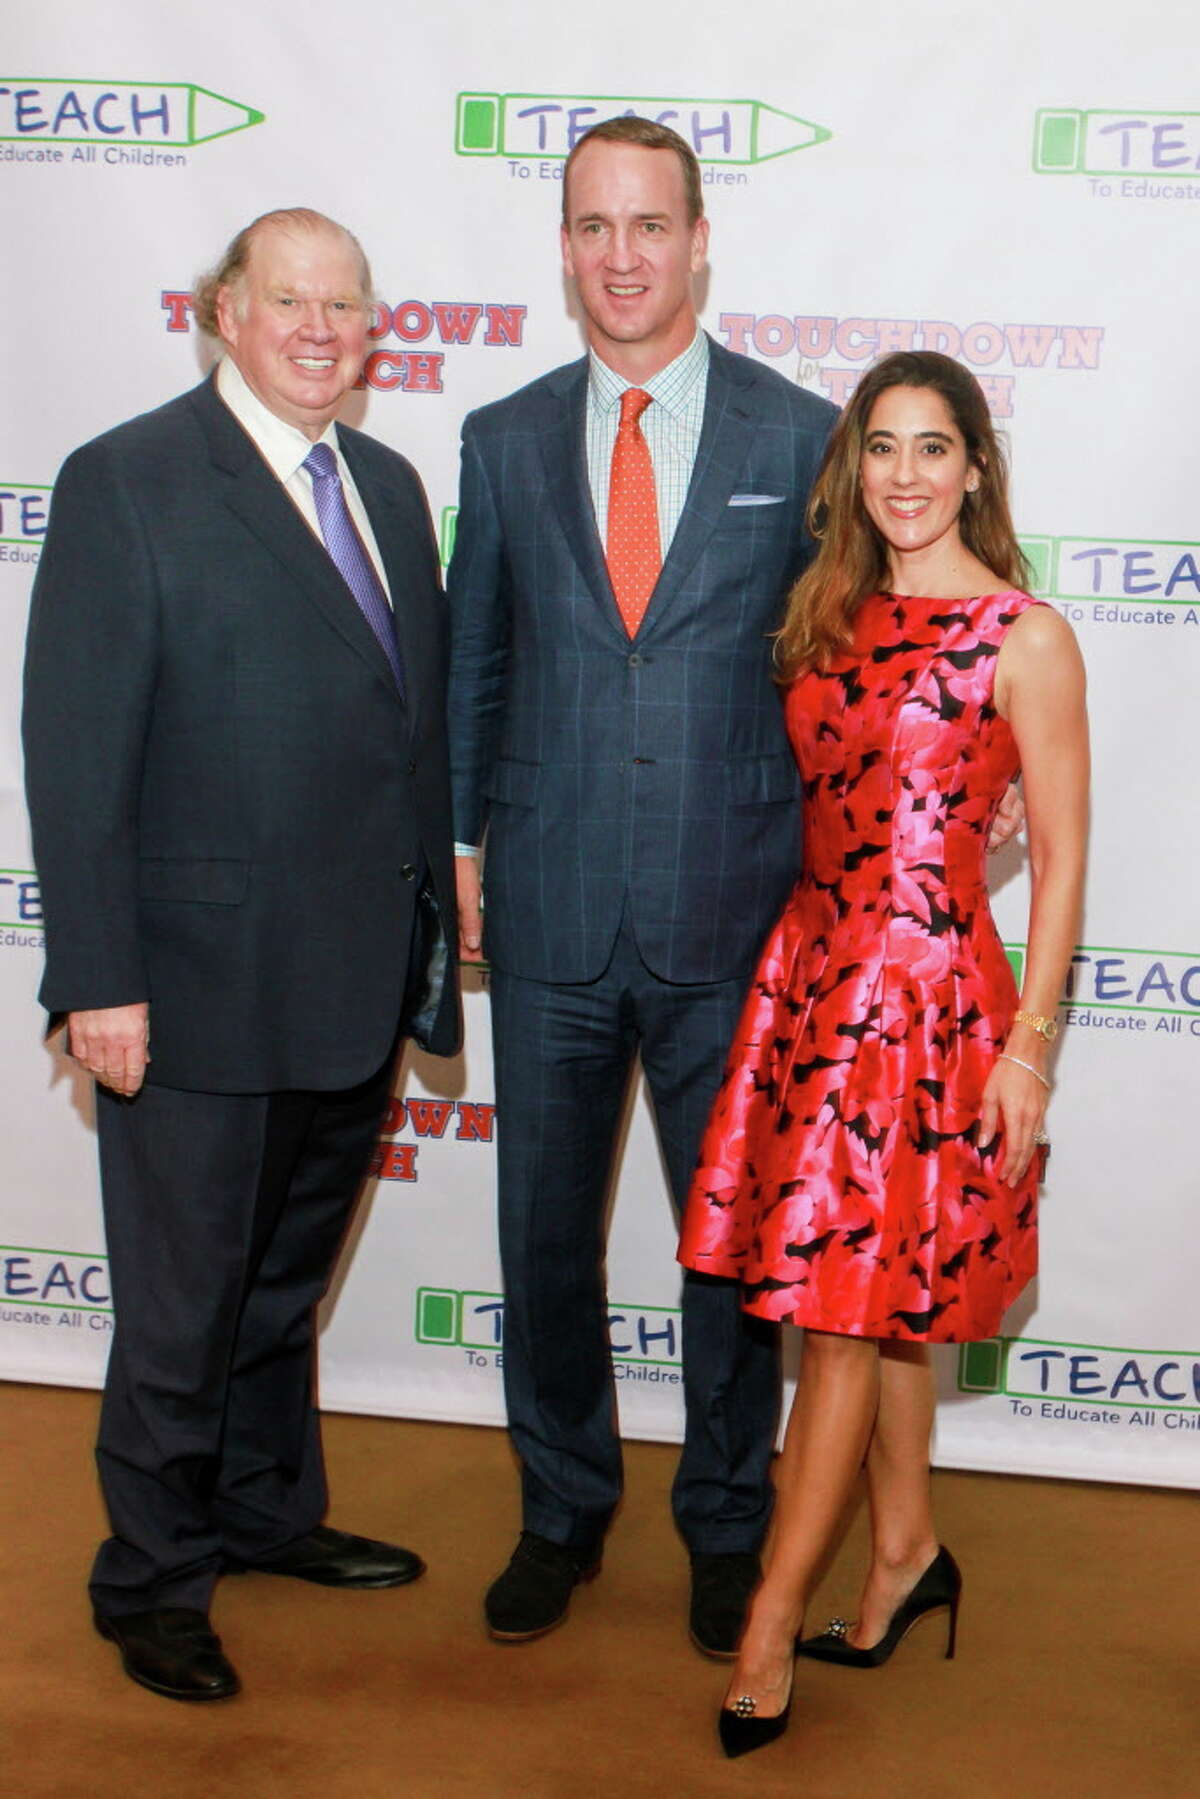 Paul and Kristina Somerville with Peyton Manning at Touchdown for TEACH at the River Oaks Country Club.